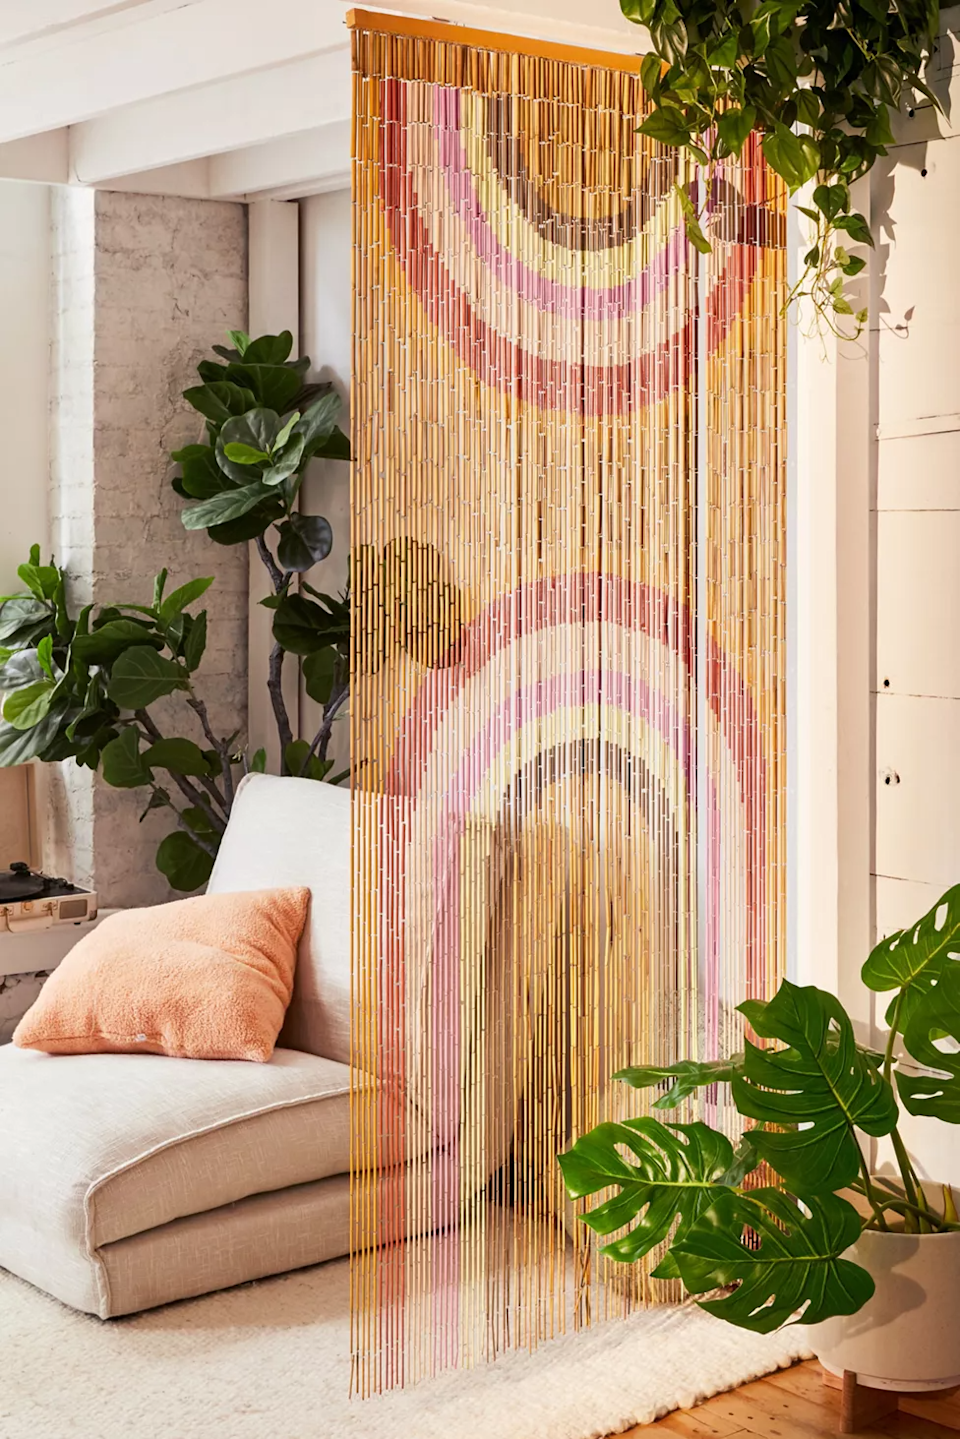 "<h3><a href=""https://www.urbanoutfitters.com/shop/rainbow-bamboo-beaded-curtain"" rel=""nofollow noopener"" target=""_blank"" data-ylk=""slk:Urban Outfitters Rainbow Bamboo Beaded Curtain"" class=""link rapid-noclick-resp"">Urban Outfitters Rainbow Bamboo Beaded Curtain</a></h3><br><strong>When you don't have a door to hang the ""Do Not Disturb"" sign on:</strong> Make your own doorway by hanging this artfully beaded bamboo panel up for a little extra-stylish privacy. <br><br><strong>Urban Outfitters</strong> Rainbow Bamboo Beaded Curtain, $, available at <a href=""https://go.skimresources.com/?id=30283X879131&url=https%3A%2F%2Fwww.urbanoutfitters.com%2Fshop%2Frainbow-bamboo-beaded-curtain"" rel=""nofollow noopener"" target=""_blank"" data-ylk=""slk:Urban Outfitters"" class=""link rapid-noclick-resp"">Urban Outfitters</a>"